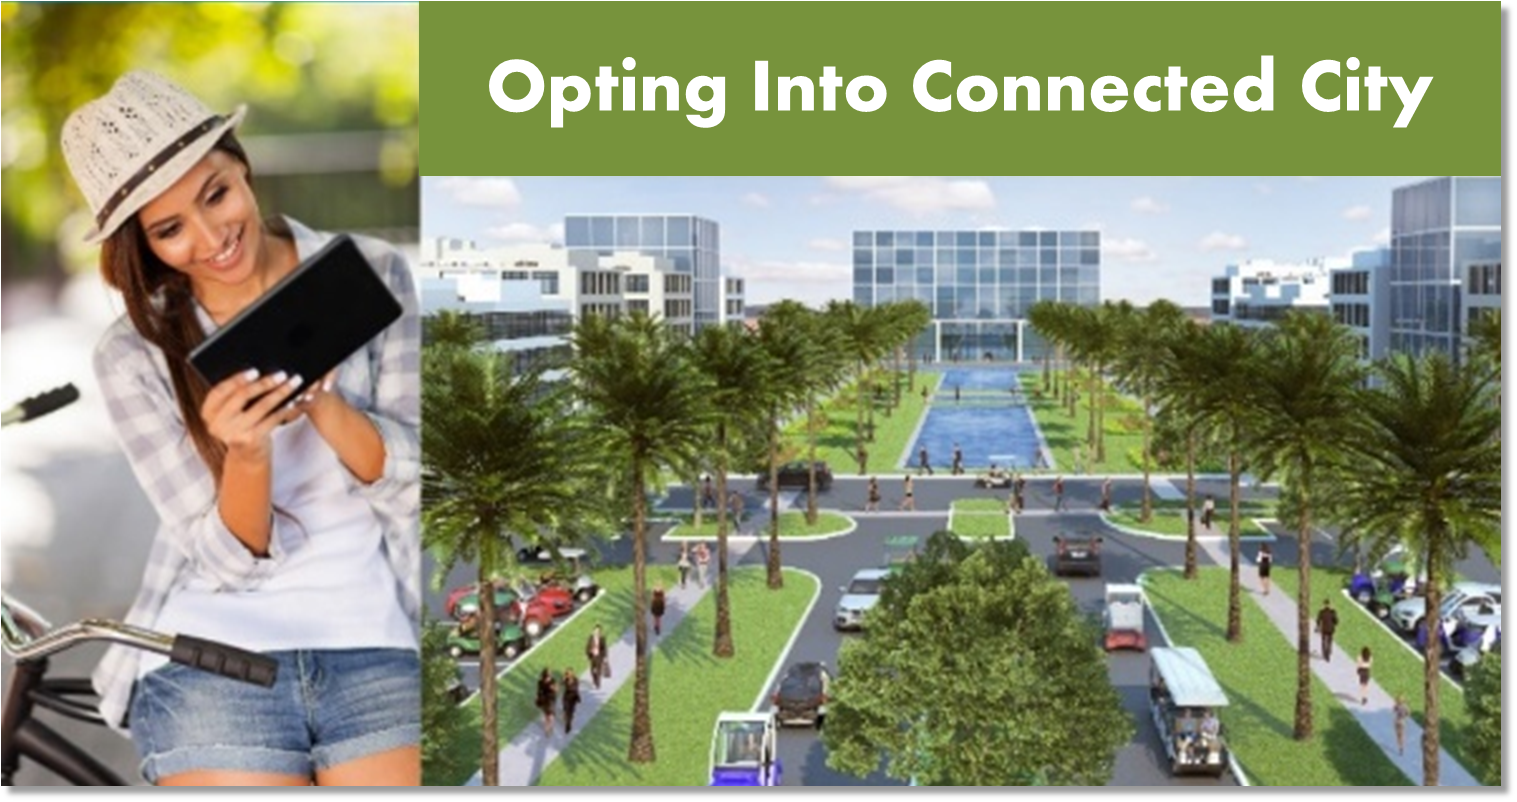 Opting Into Connected City